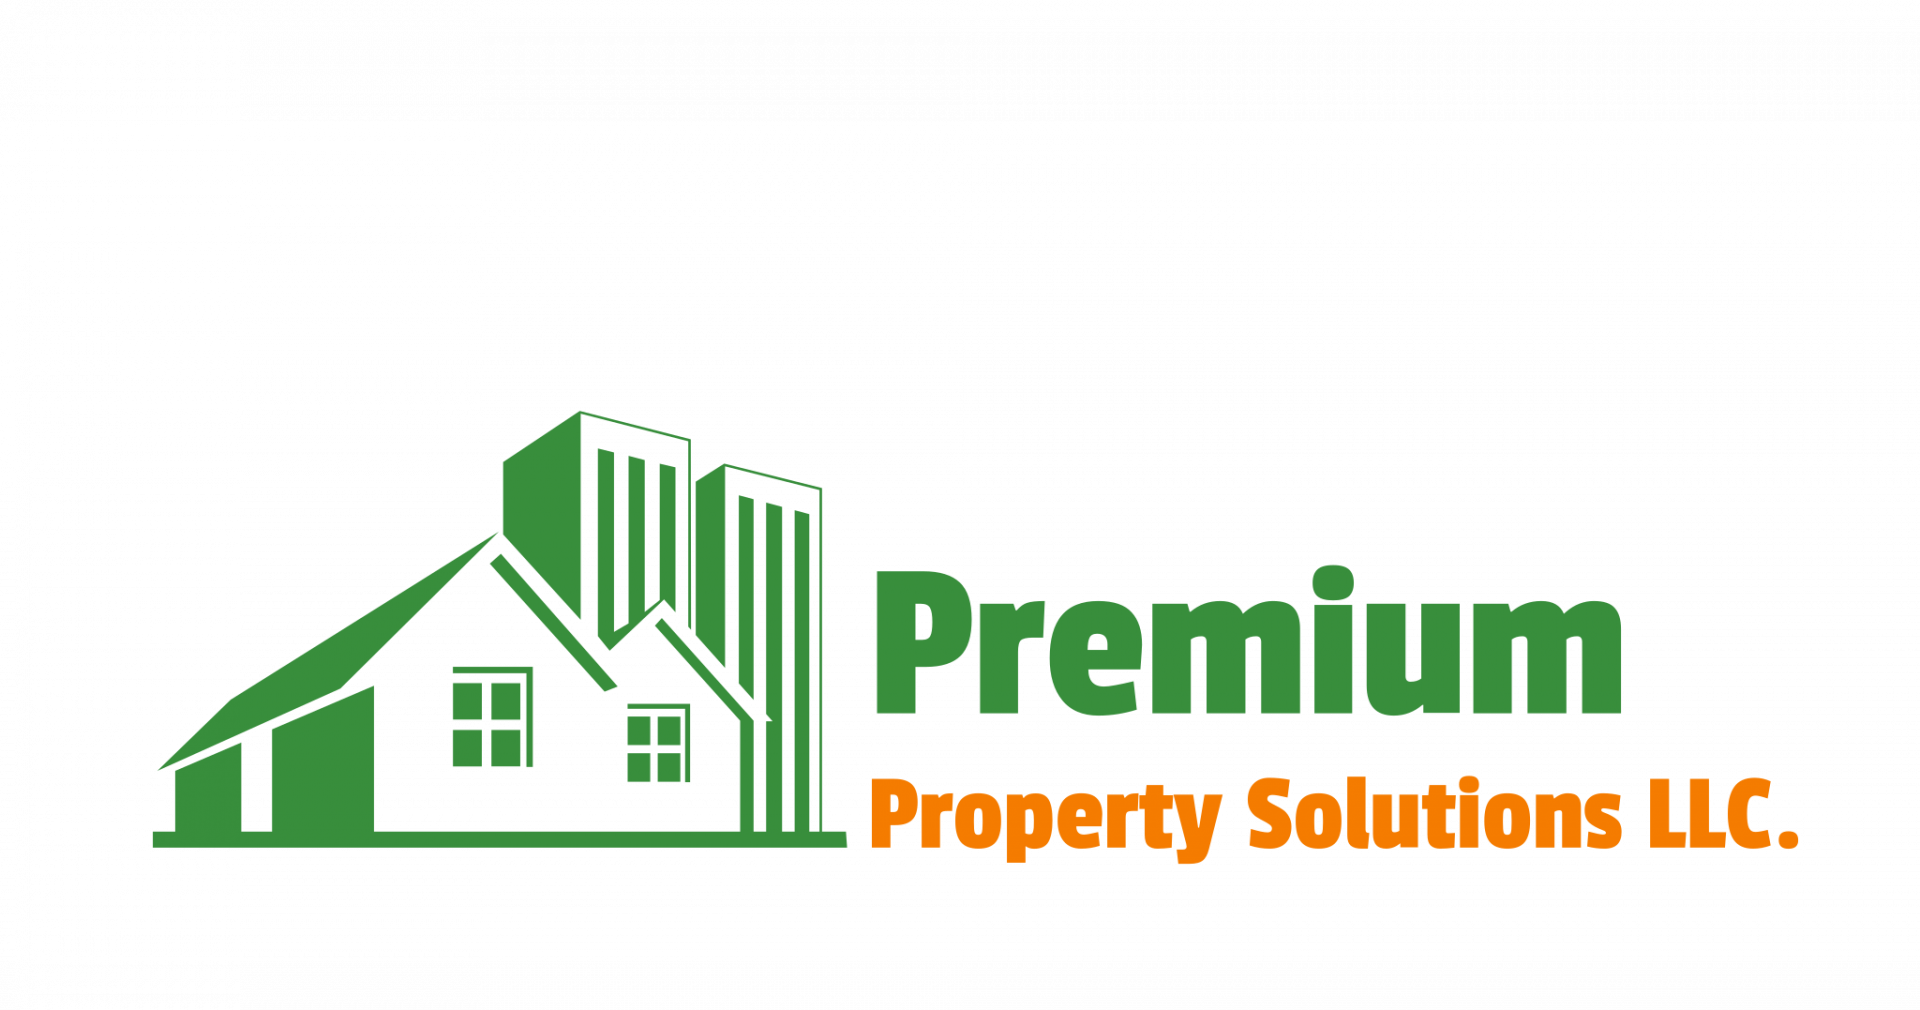 Premium Property Solutions LLC. logo